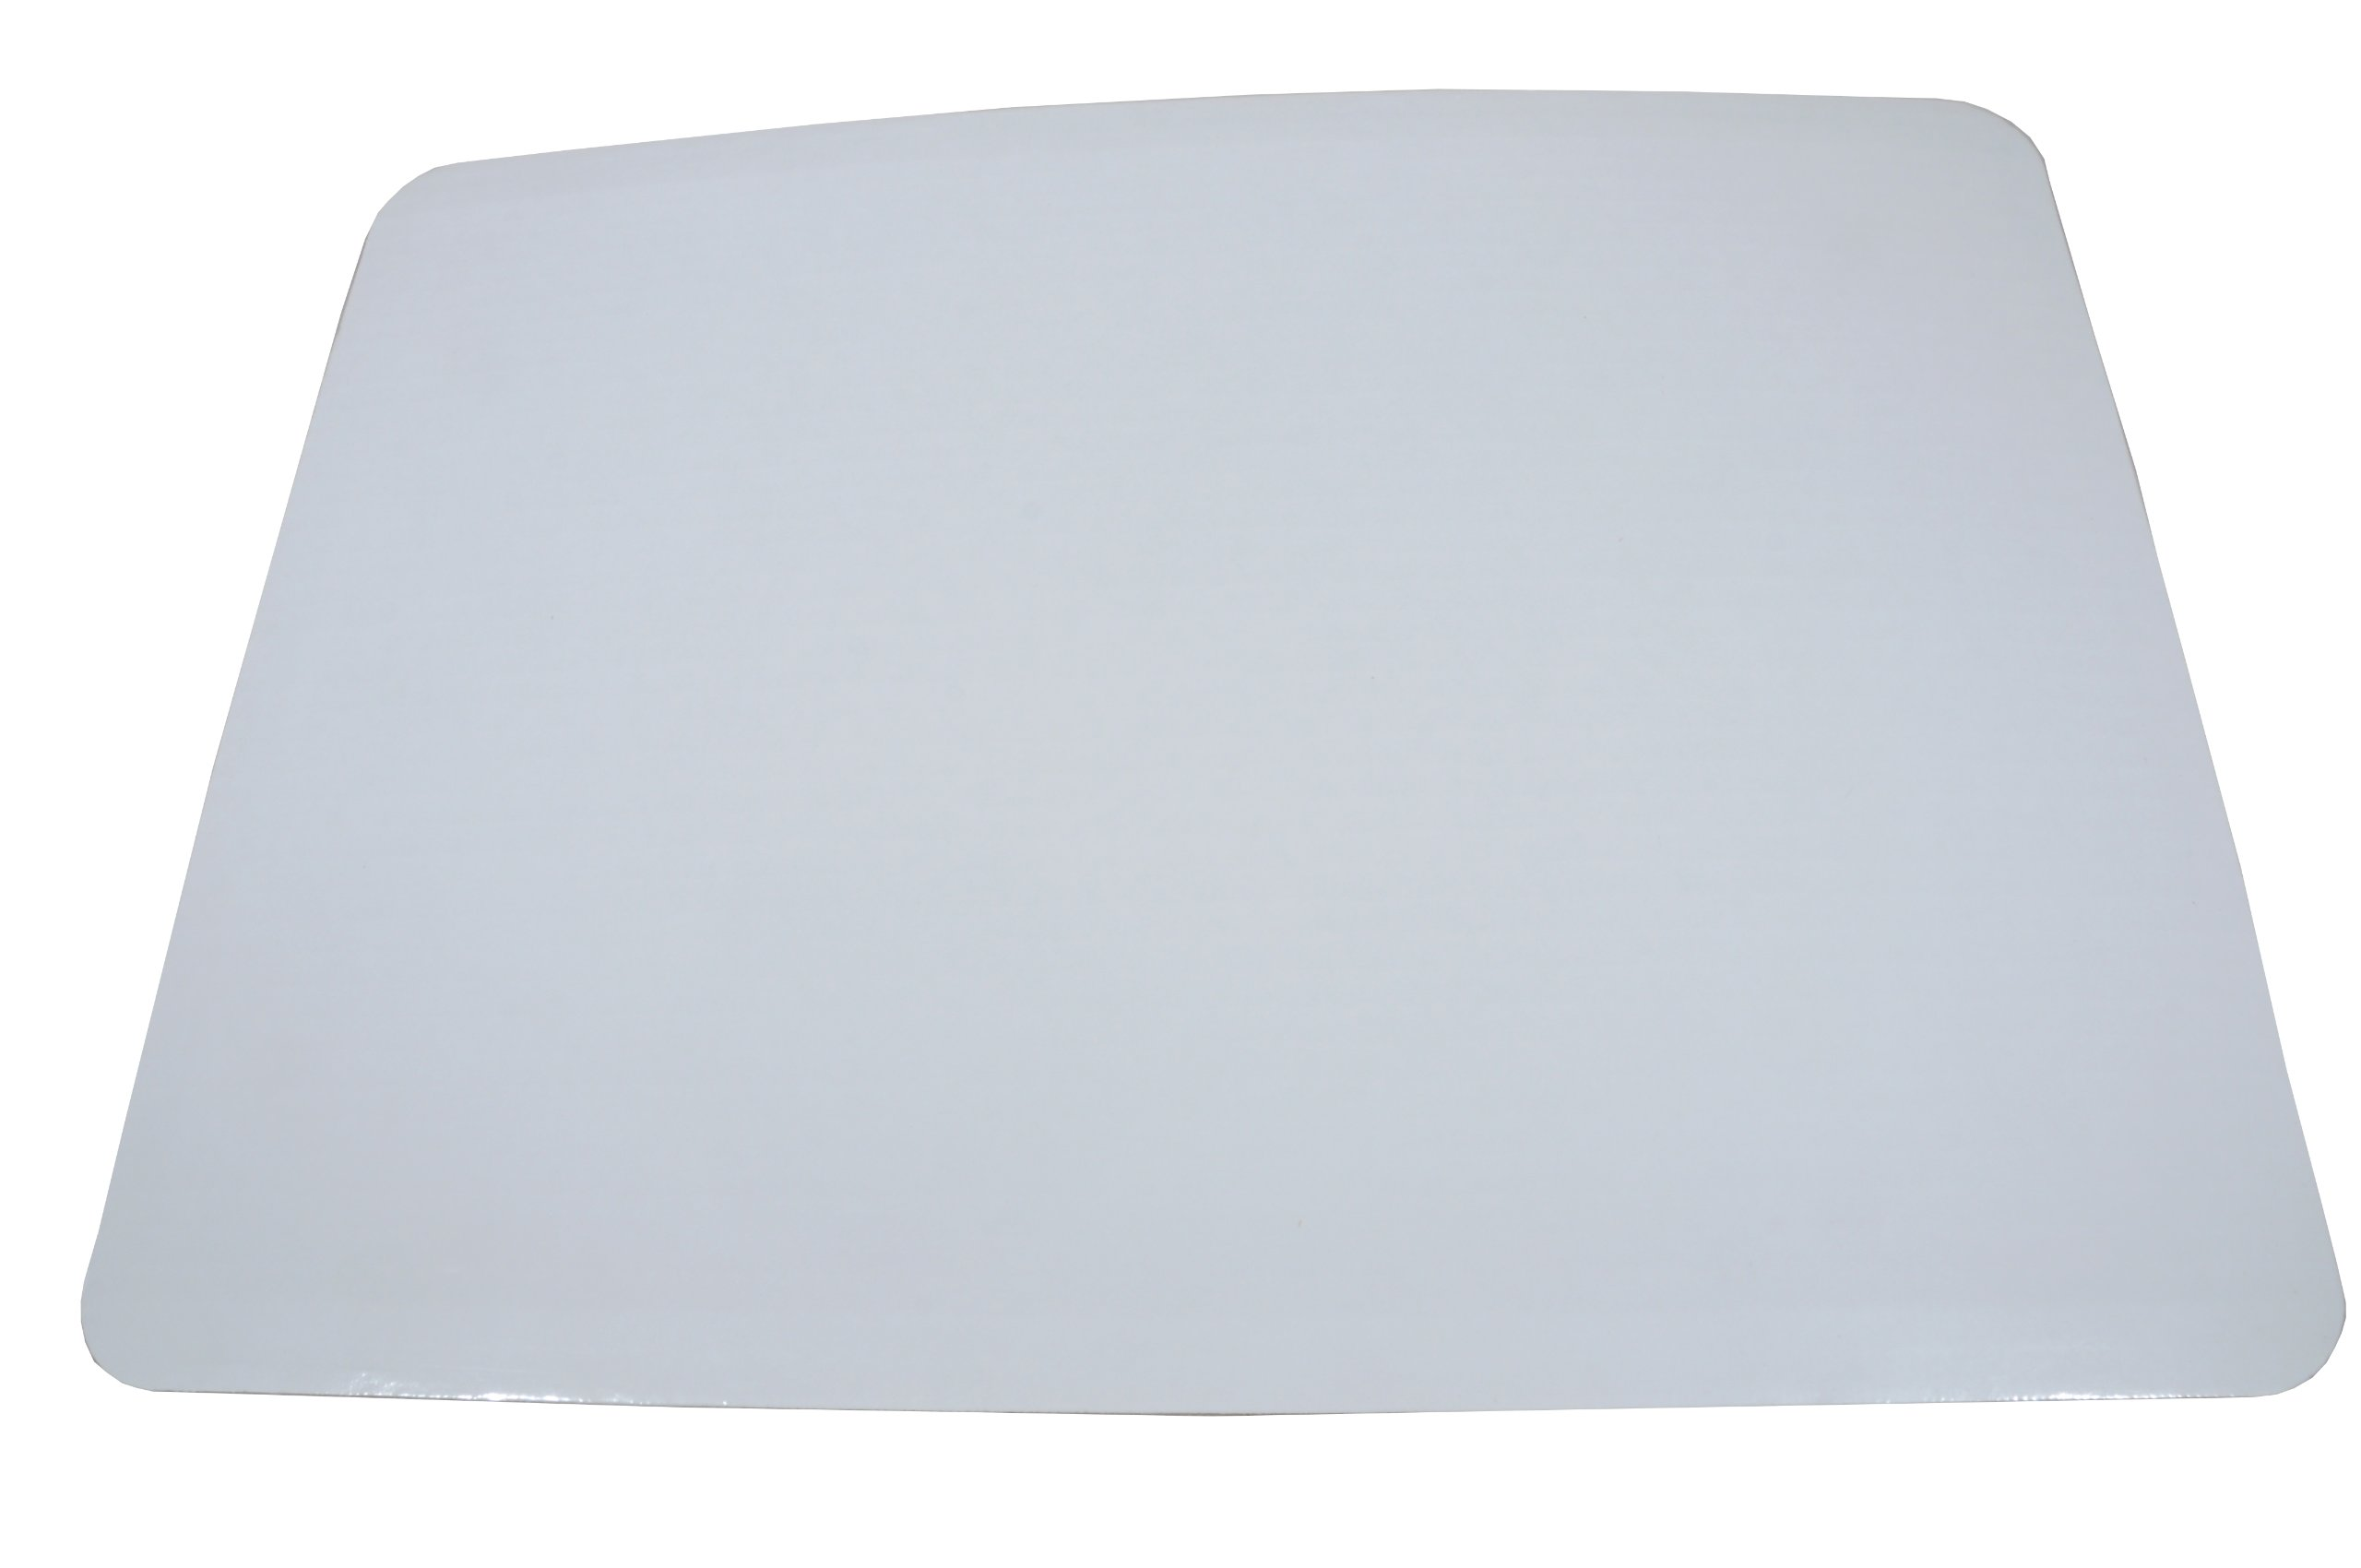 Southern Champion Tray 1153 Corrugated Greaseproof Single Wall Cake Pad, Half Sheet, 19'' L x 14'' W, Bright White (Case of 50)